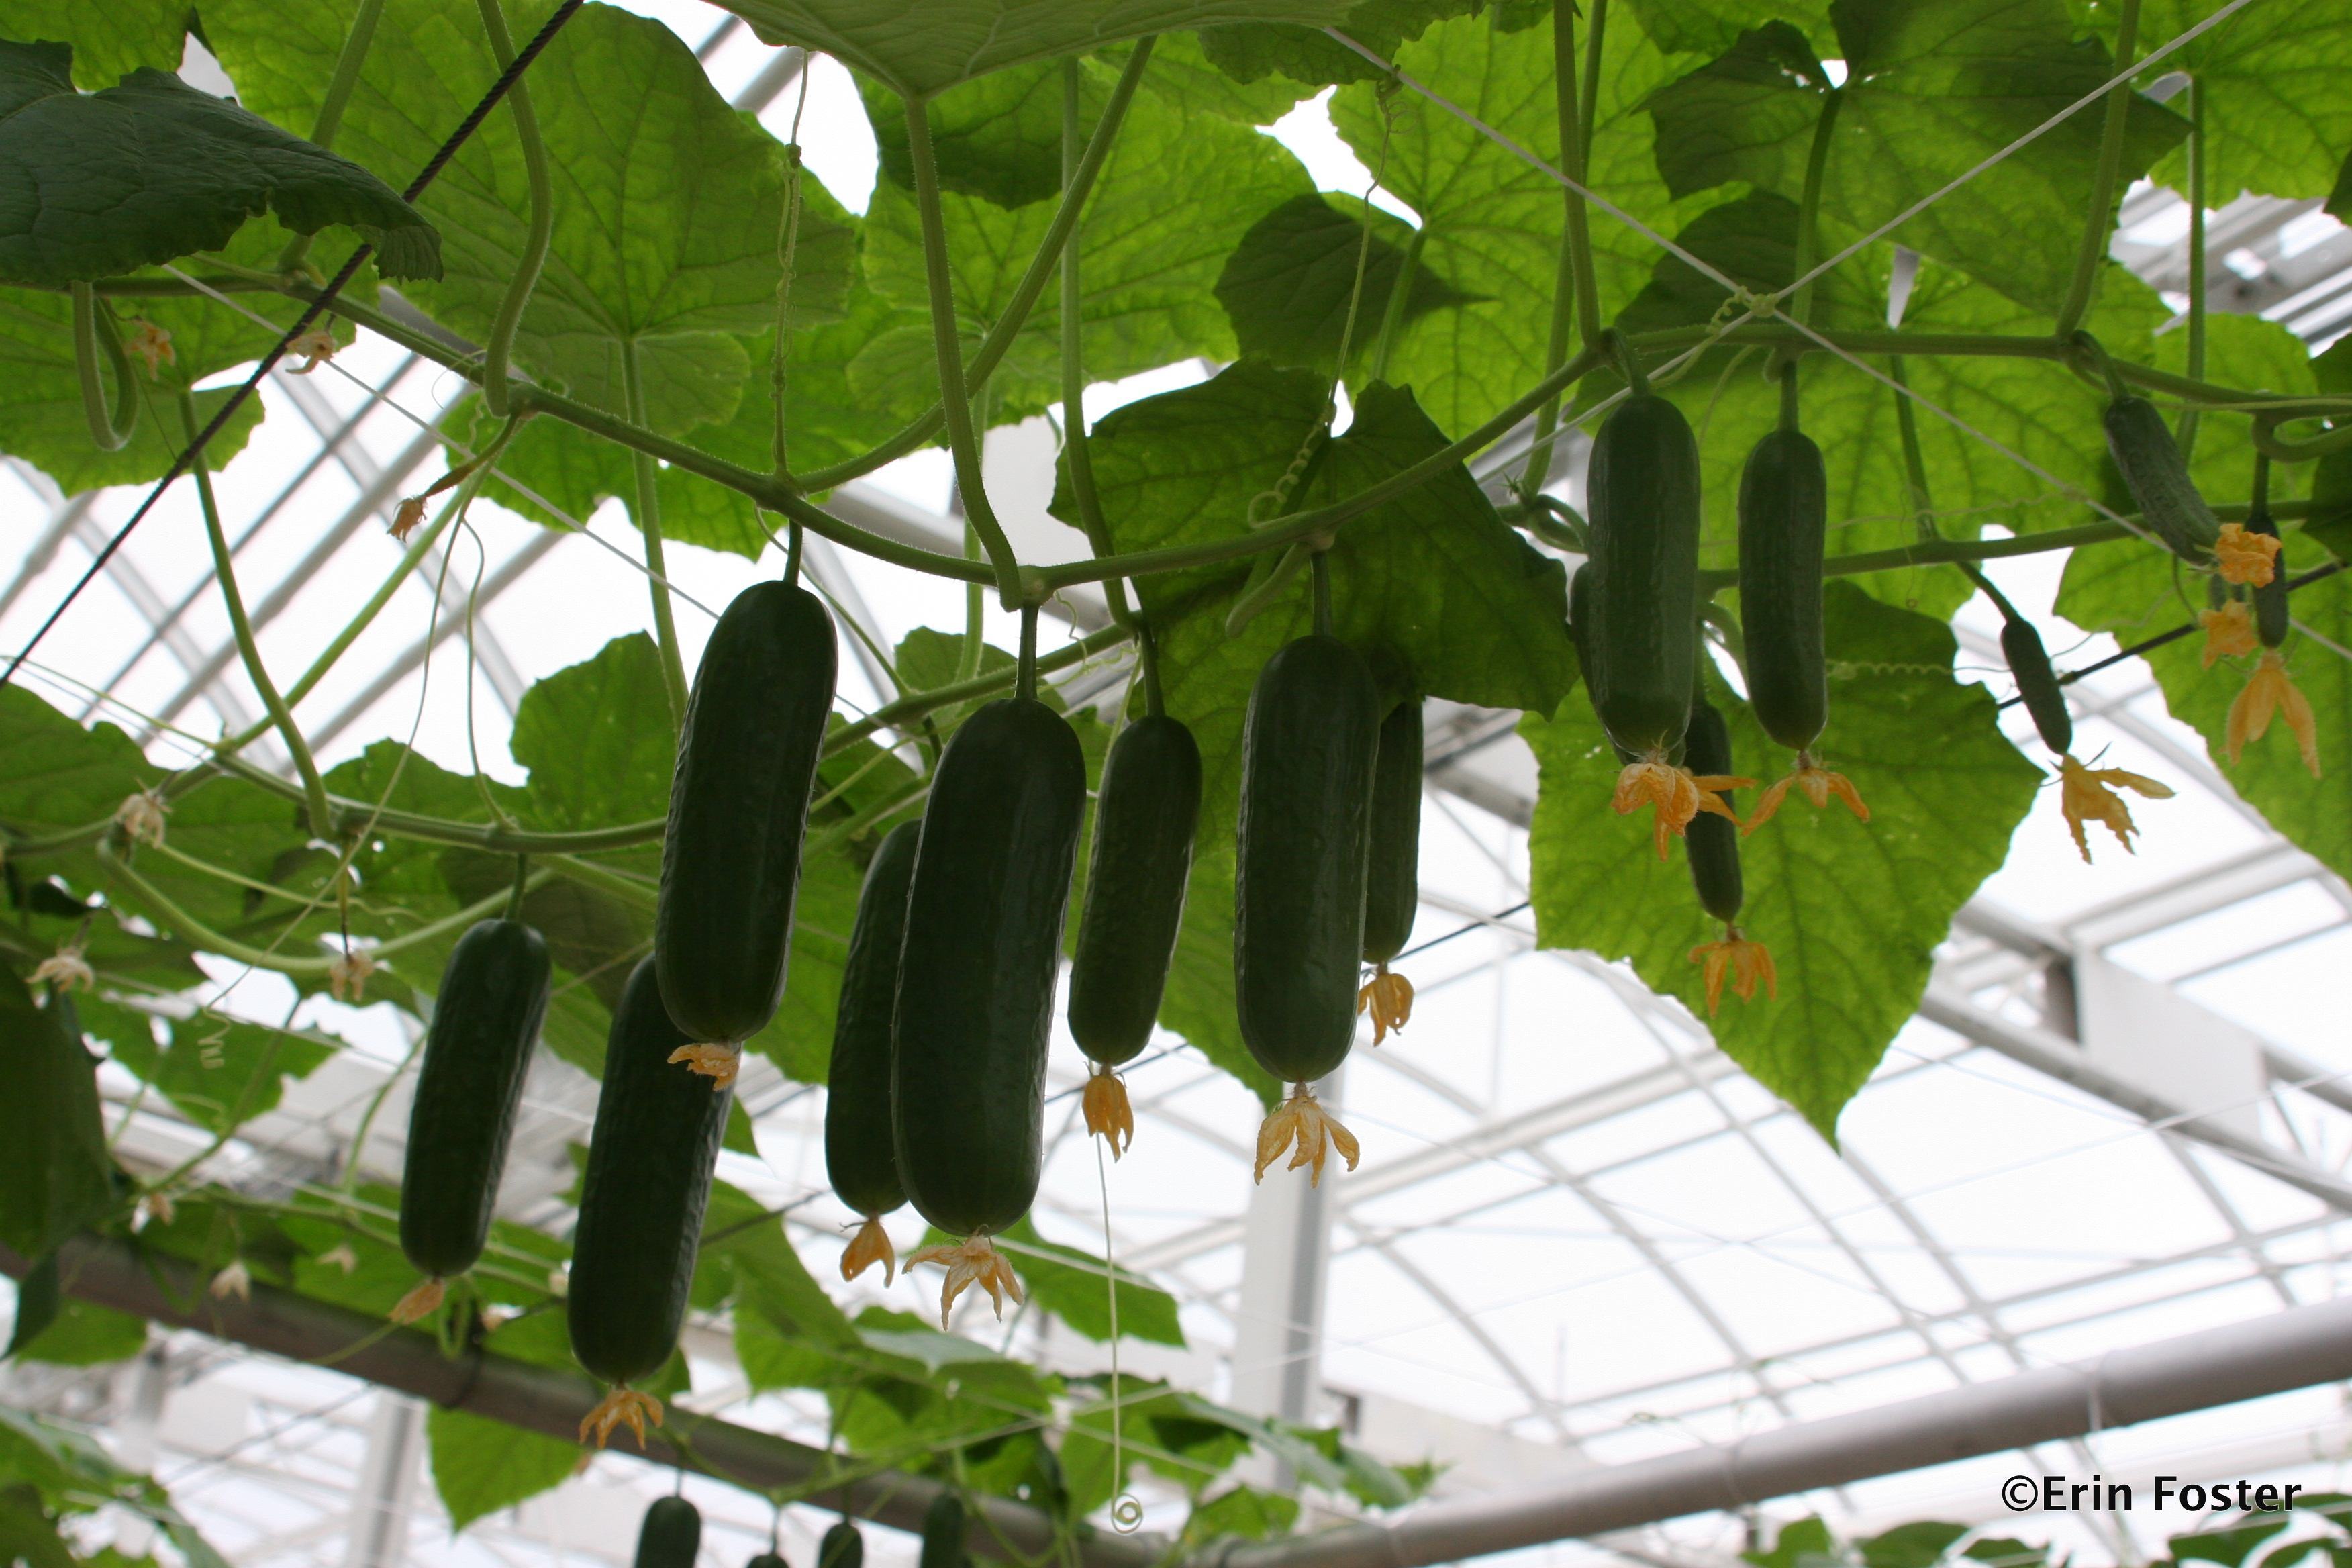 Growing Cucumbers At The Land